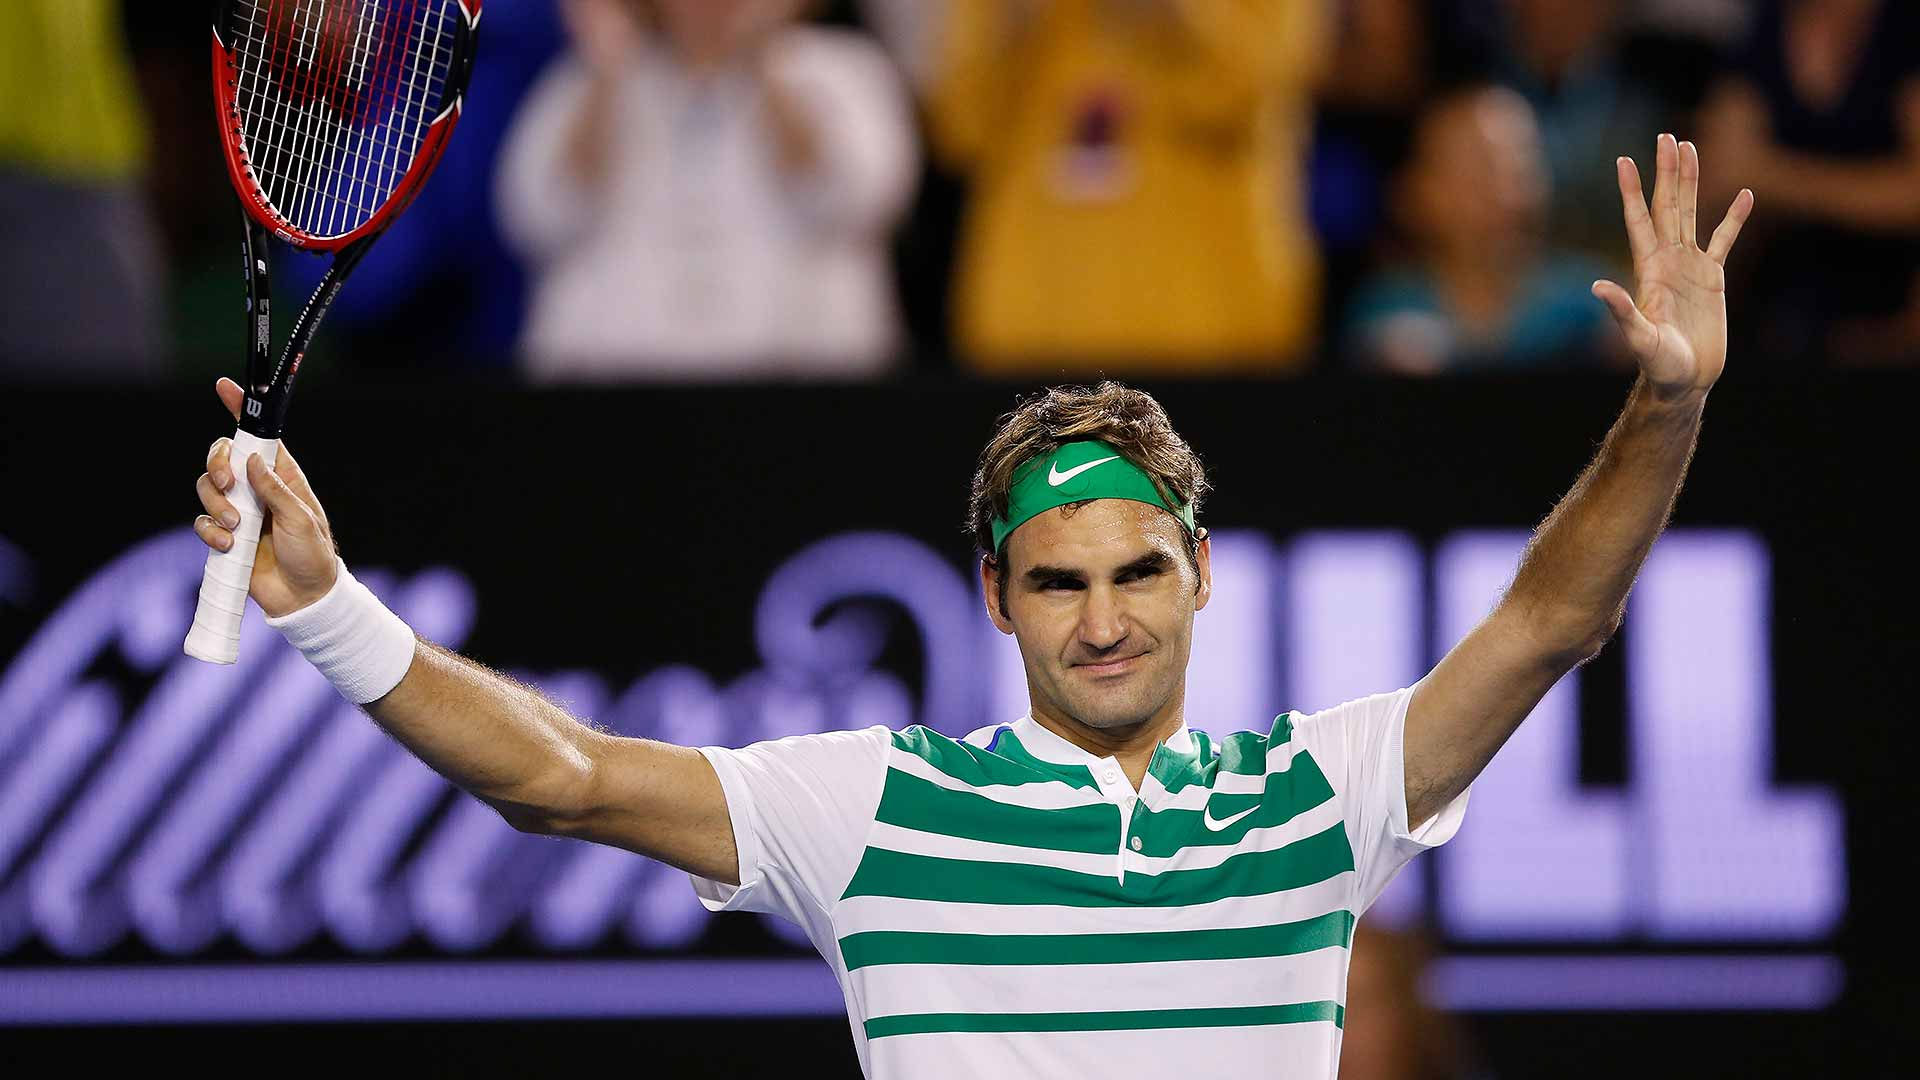 Federer at Australian Open 2009 defeating Berdych. Image Courtesy: ATPWorldTour